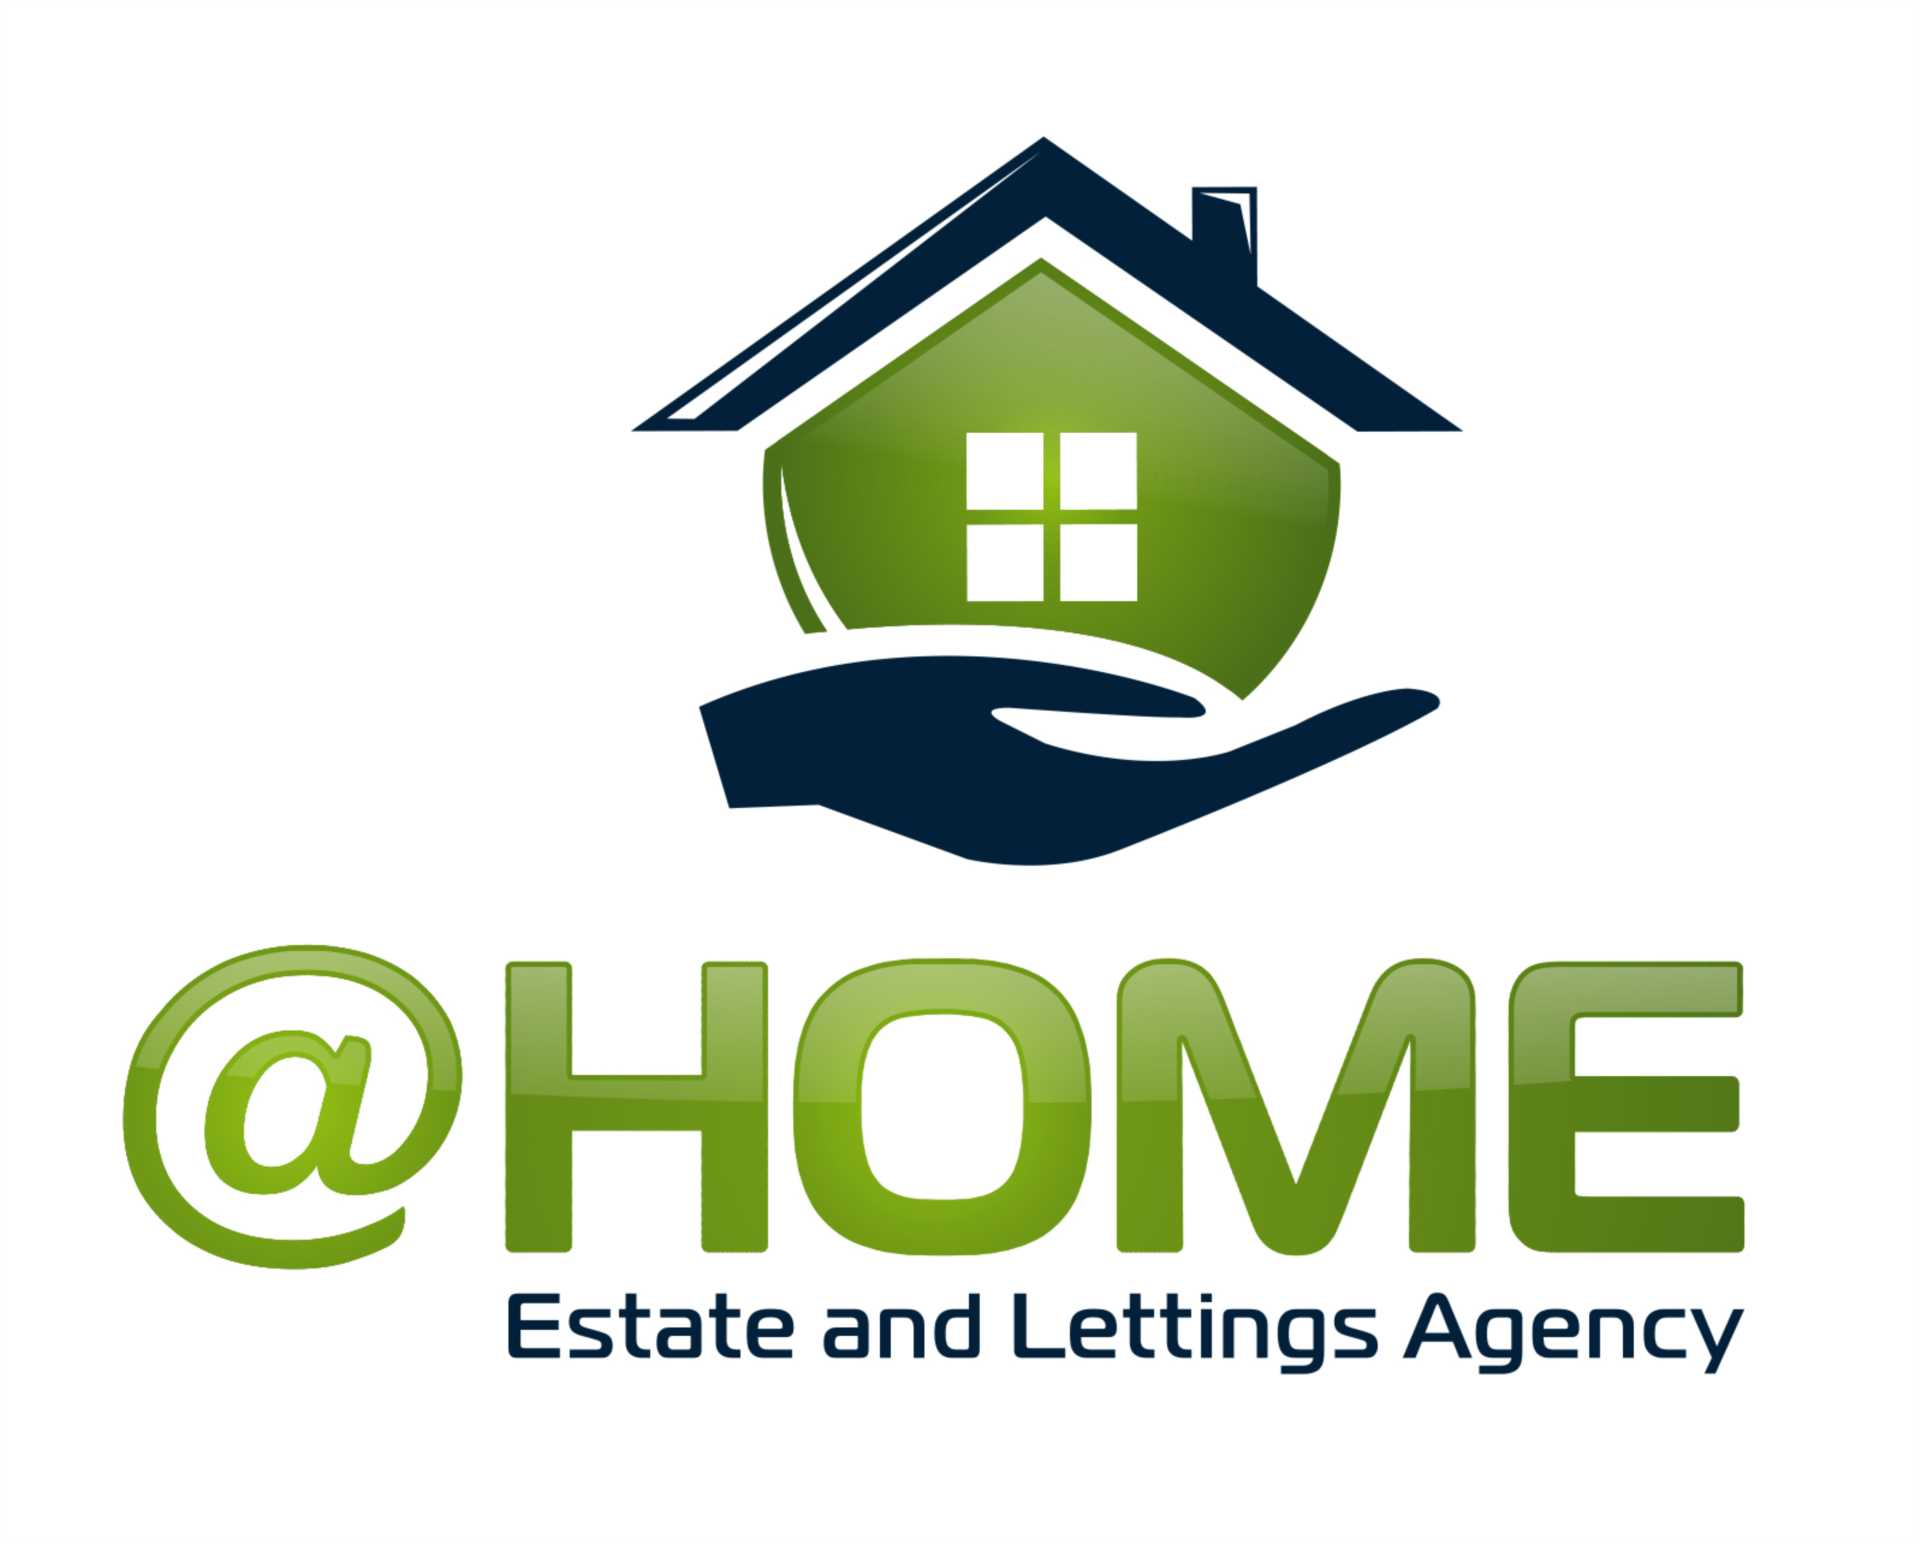 Interested in a career within estate agency?